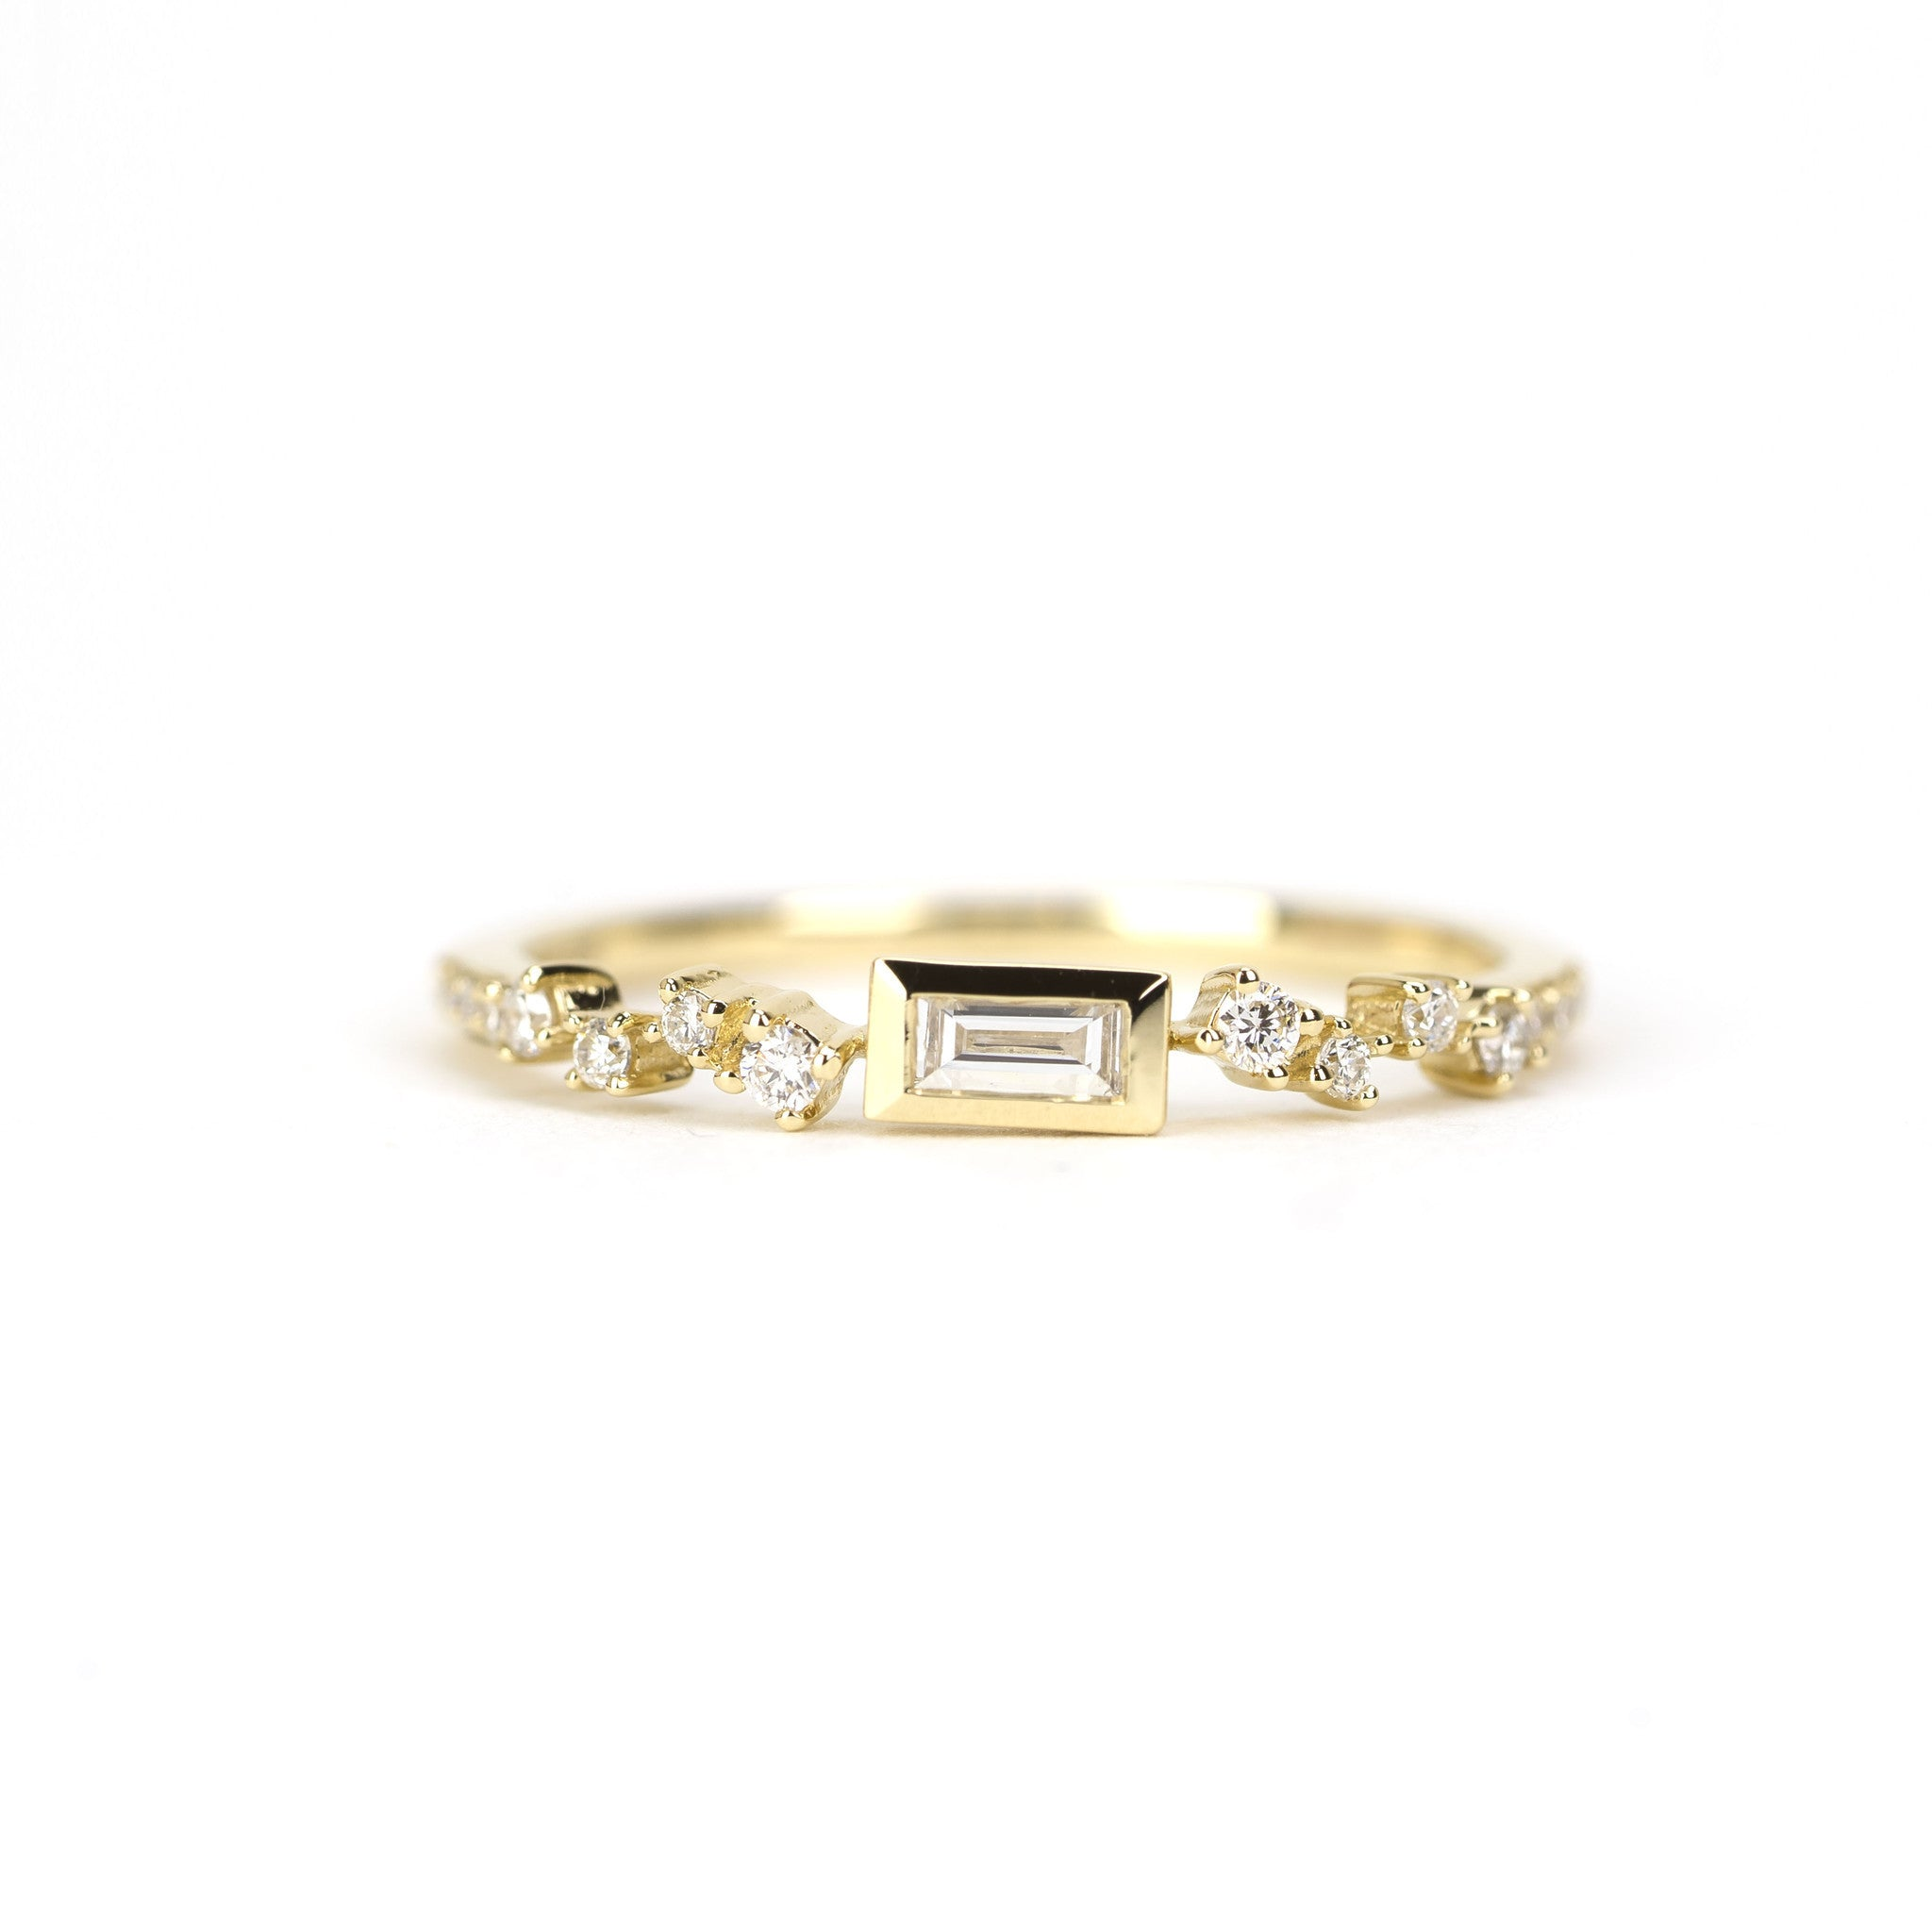 Baguette Bezel Cluster Ring by Atheria Jewelry